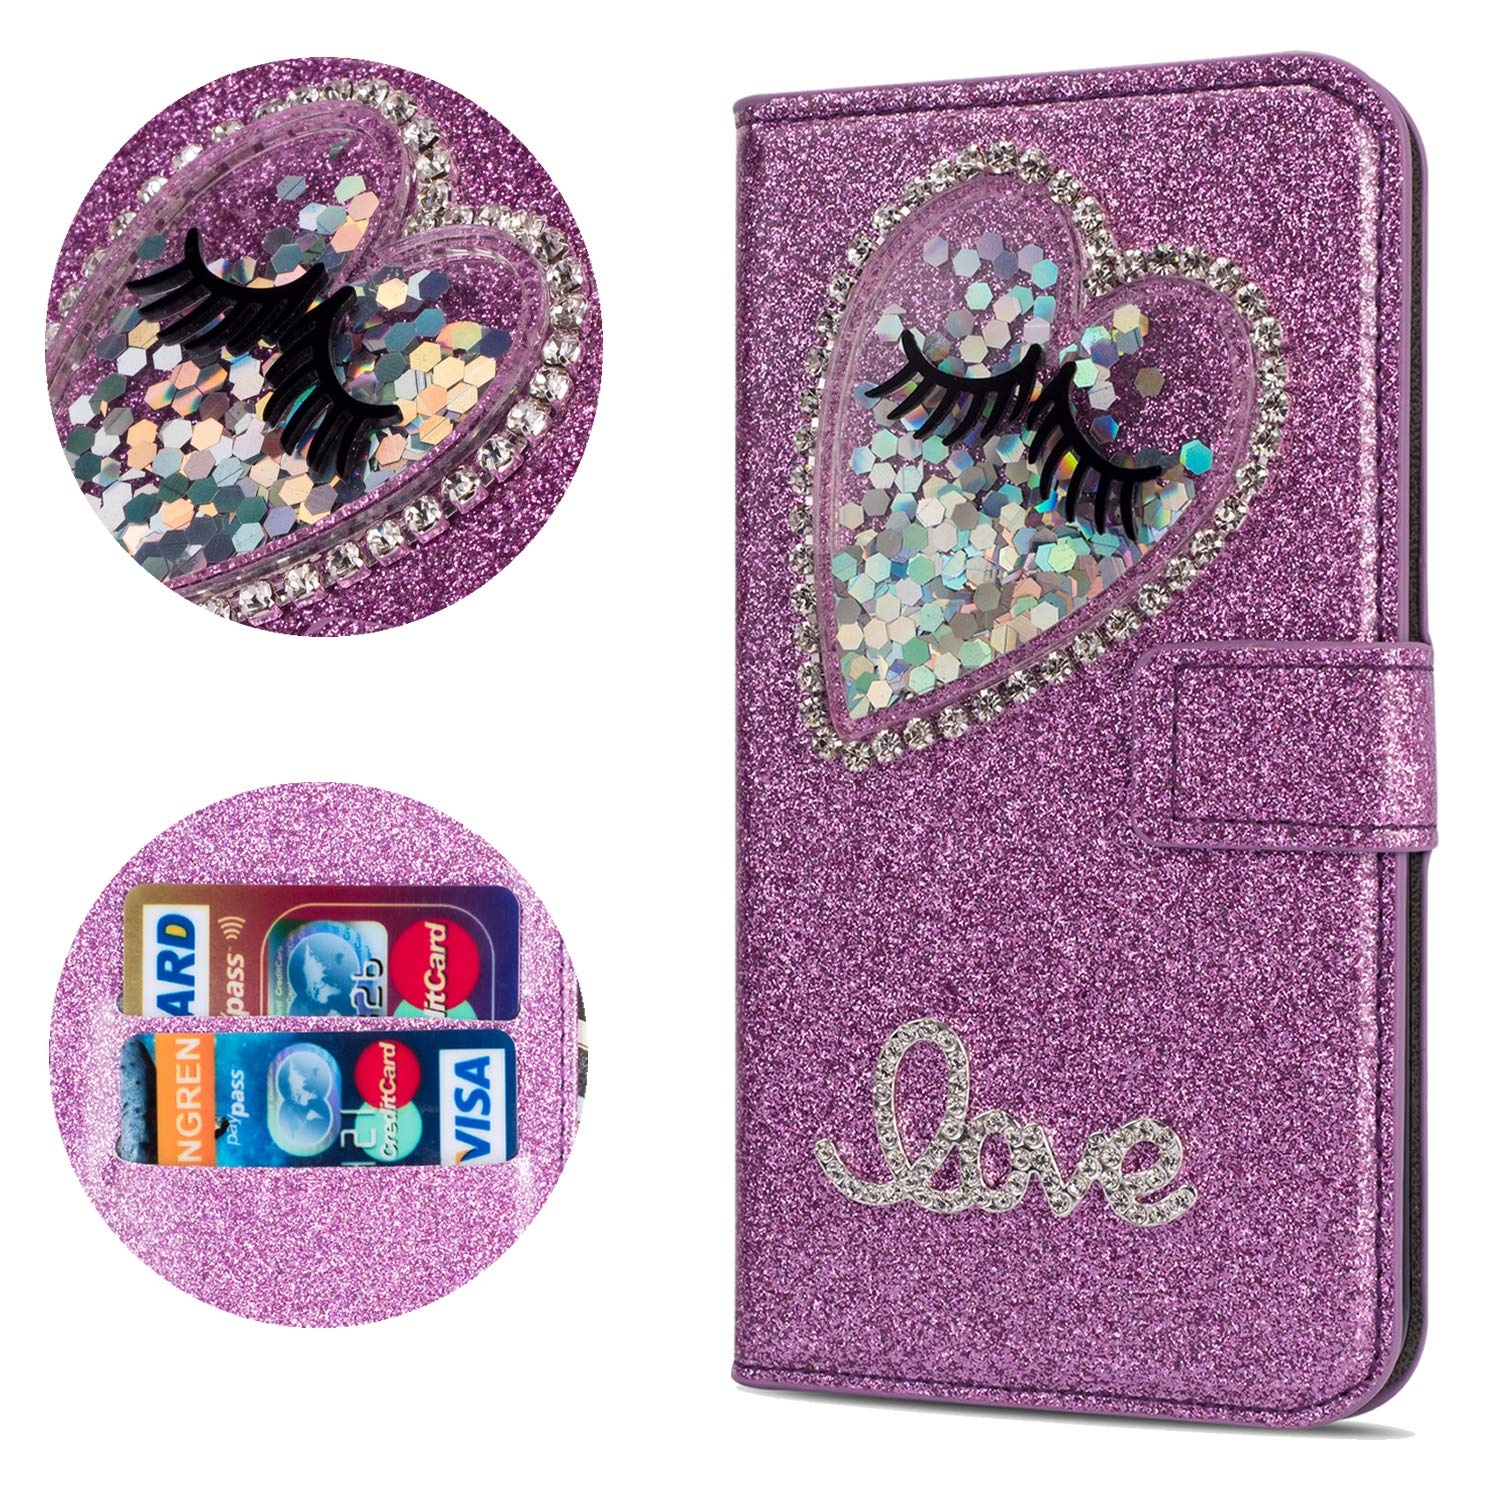 Stysen Flip Case for Galaxy S6 Edge,Leather Cover with 3D Handmade Diamond Heart Sequins Glitter Shiny Wallet Magnetic Clasp for Samsung Galaxy S6 Edge